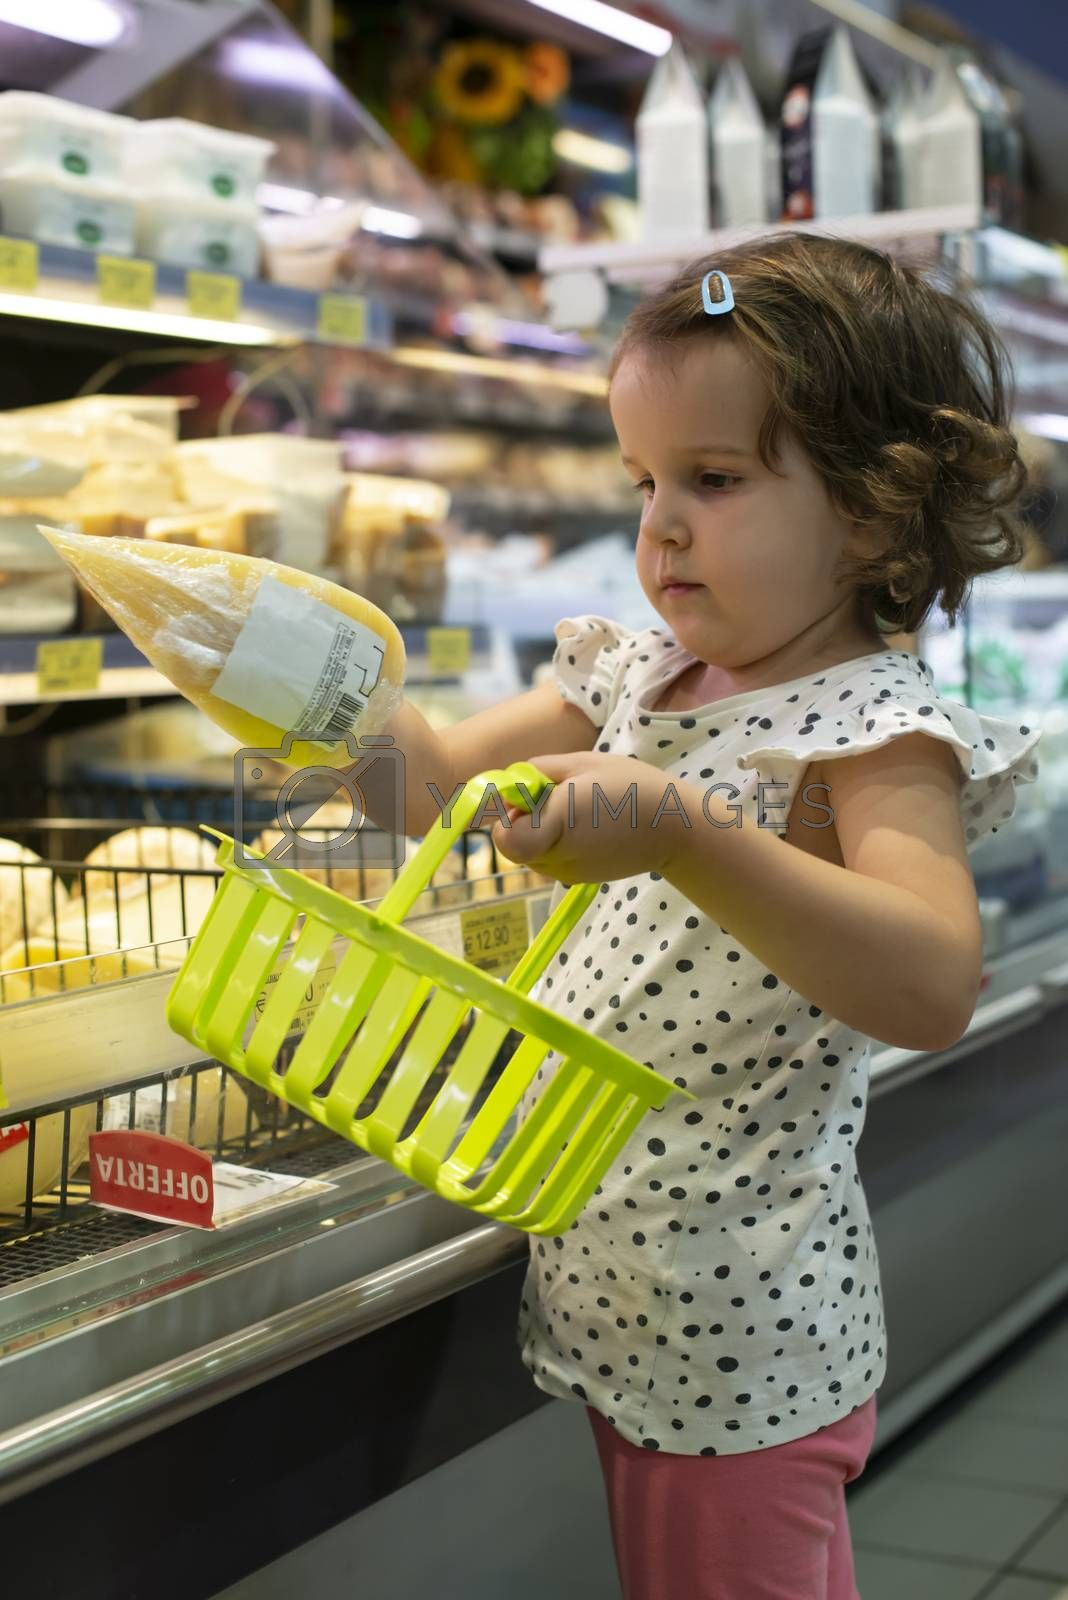 Little girl buying cheese in supermarket. Child hold small basket in supermarket and select cheese from store showcase. Concept for children selecting products in shop.